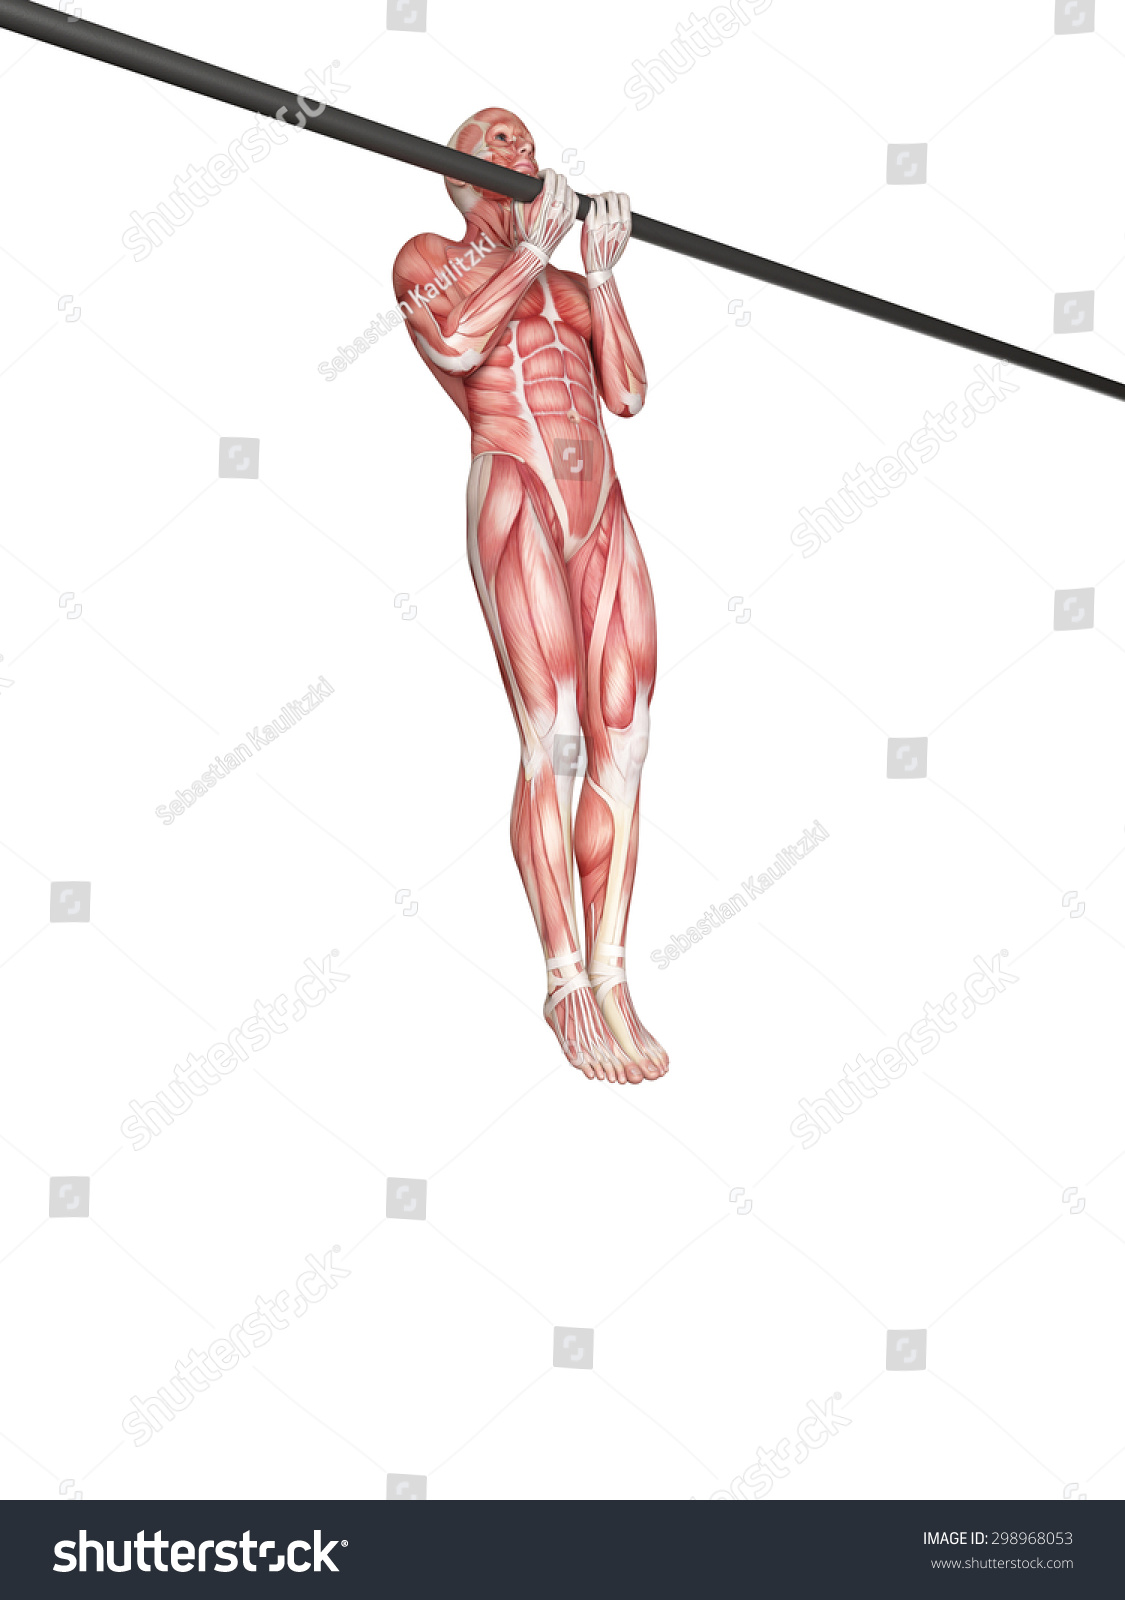 Exercise Illustration Close Grip Chin Stock Illustration 298968053 ...